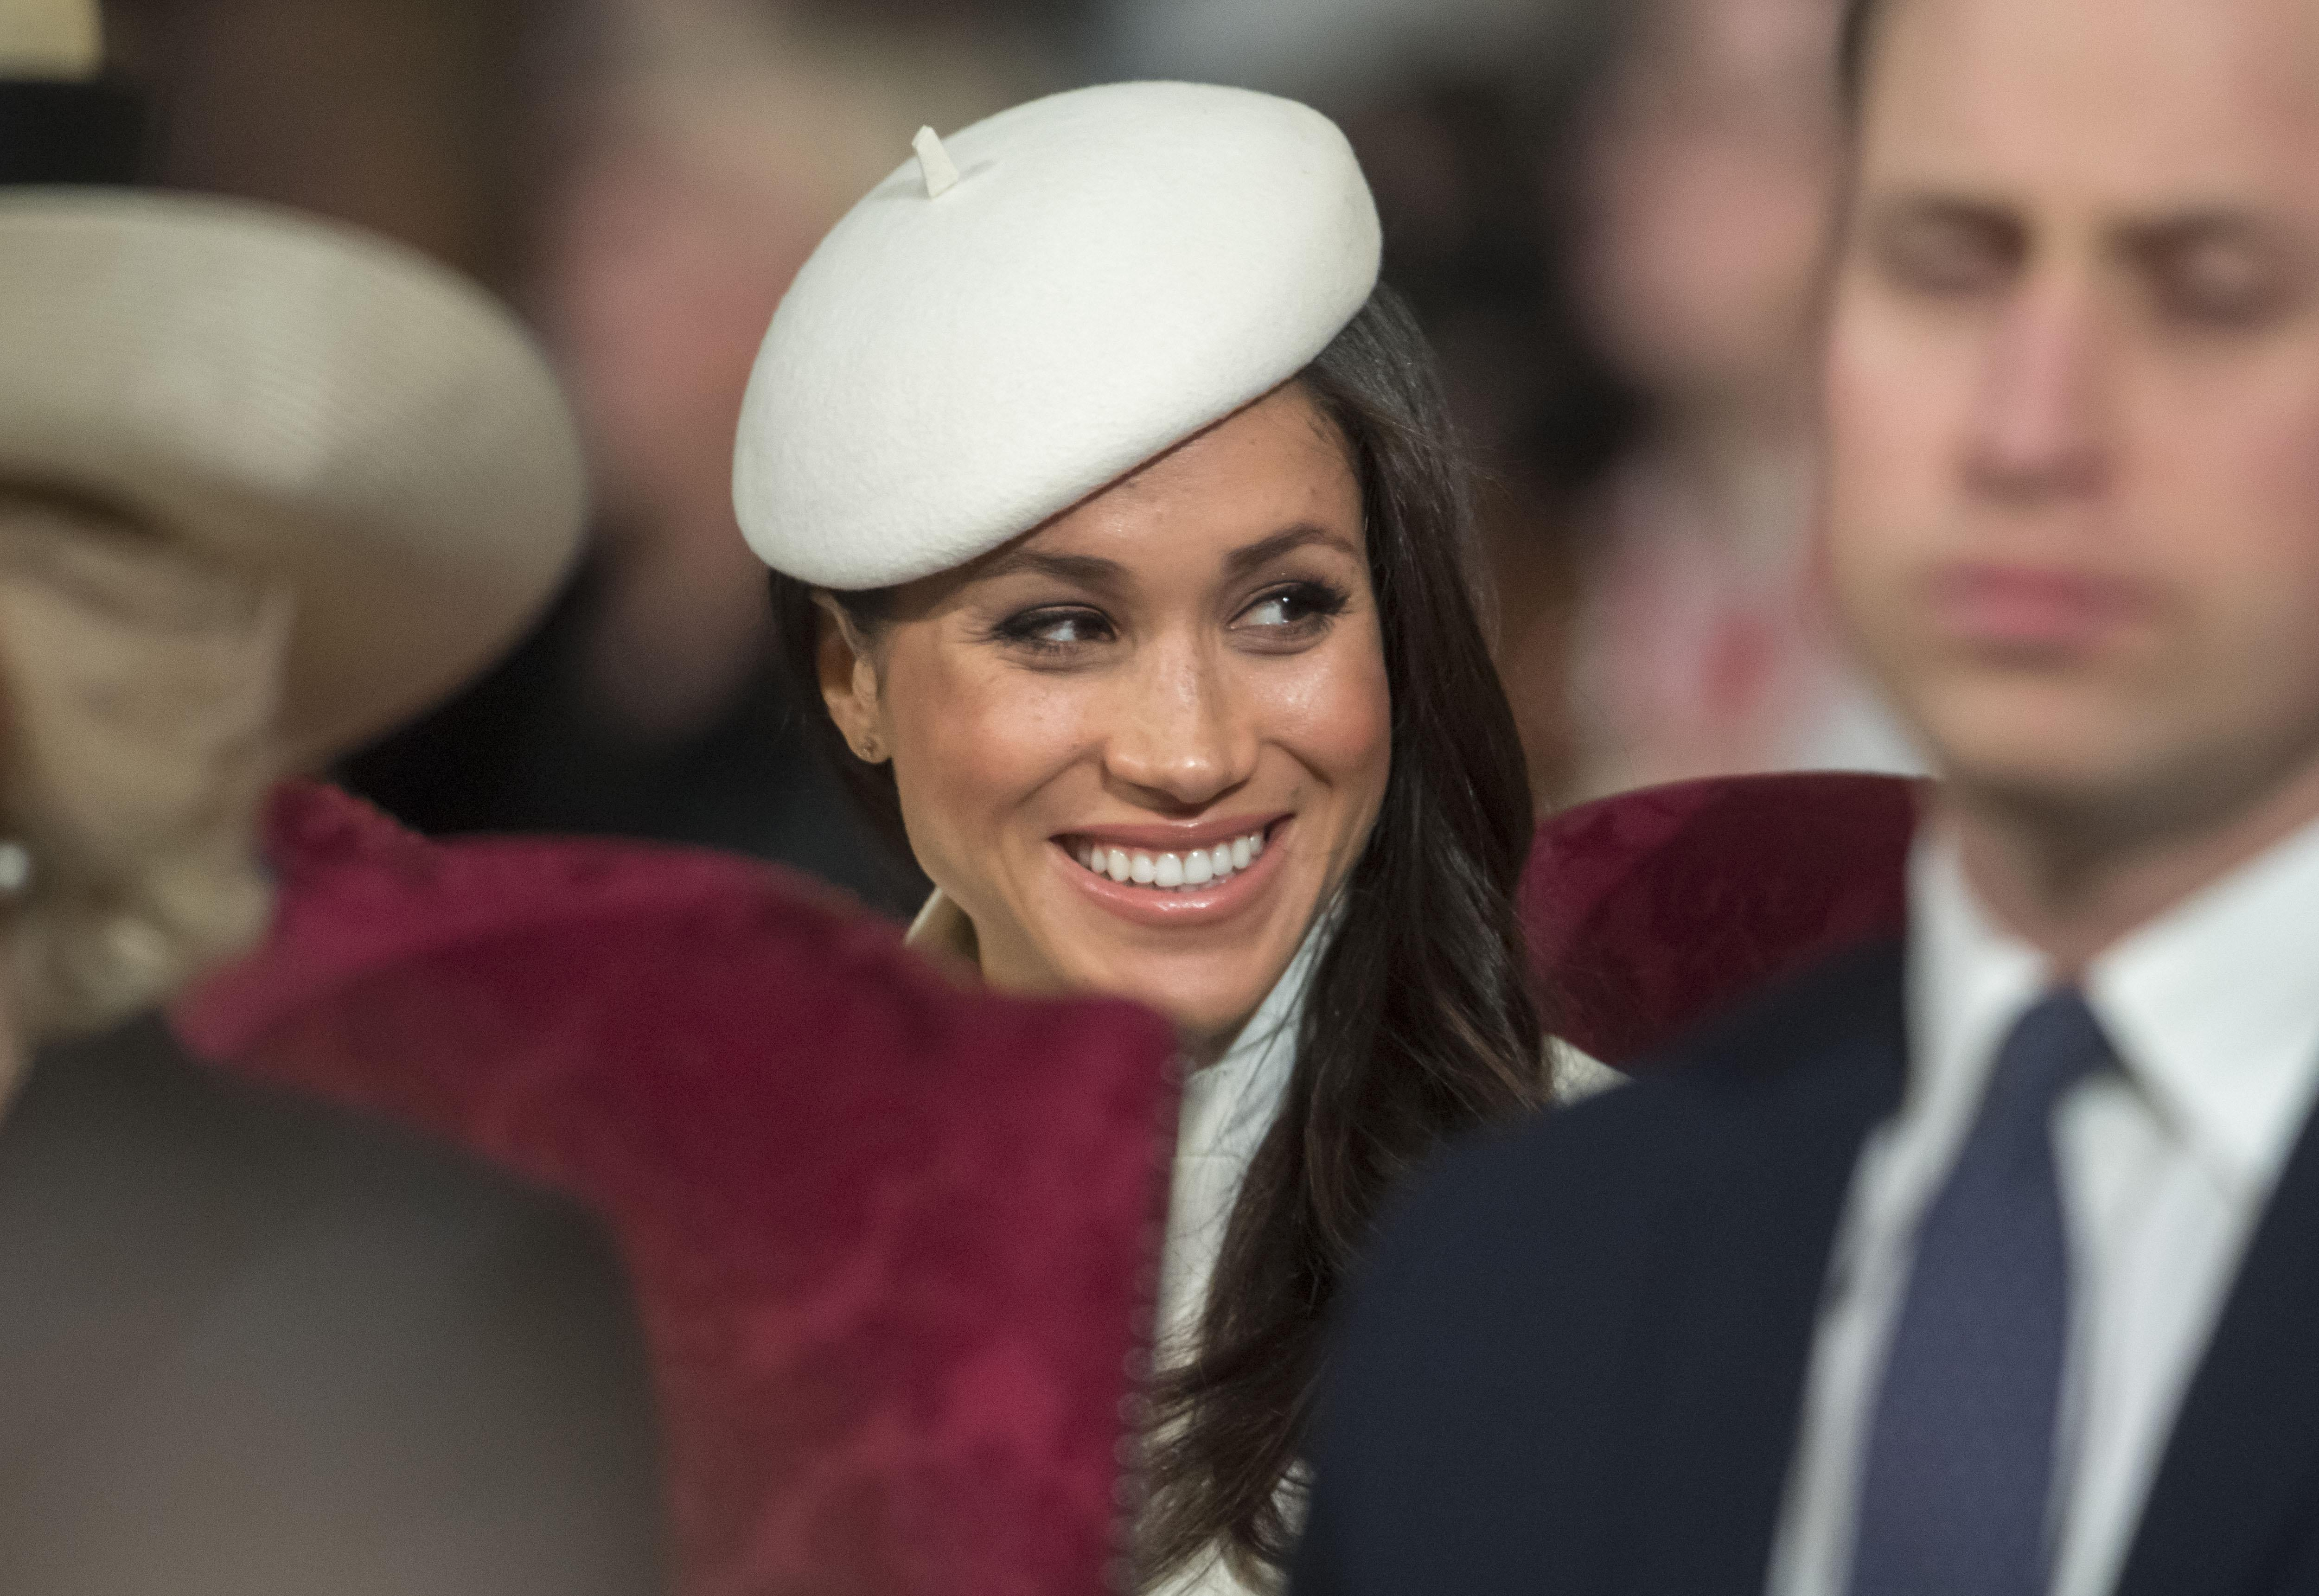 LONDON, UNITED KINGDOM - MARCH 12: Meghan Markle smiles as she shares a joke with Prince Andrew during the Commonwealth Service at Westminster Abbey on March 12, 2018 in London, England. Organised by The Royal Commonwealth Society, the Commonwealth Service is the largest annual inter-faith gathering in the United Kingdom. (Photo by Paul Grover - Pool/Getty Images)